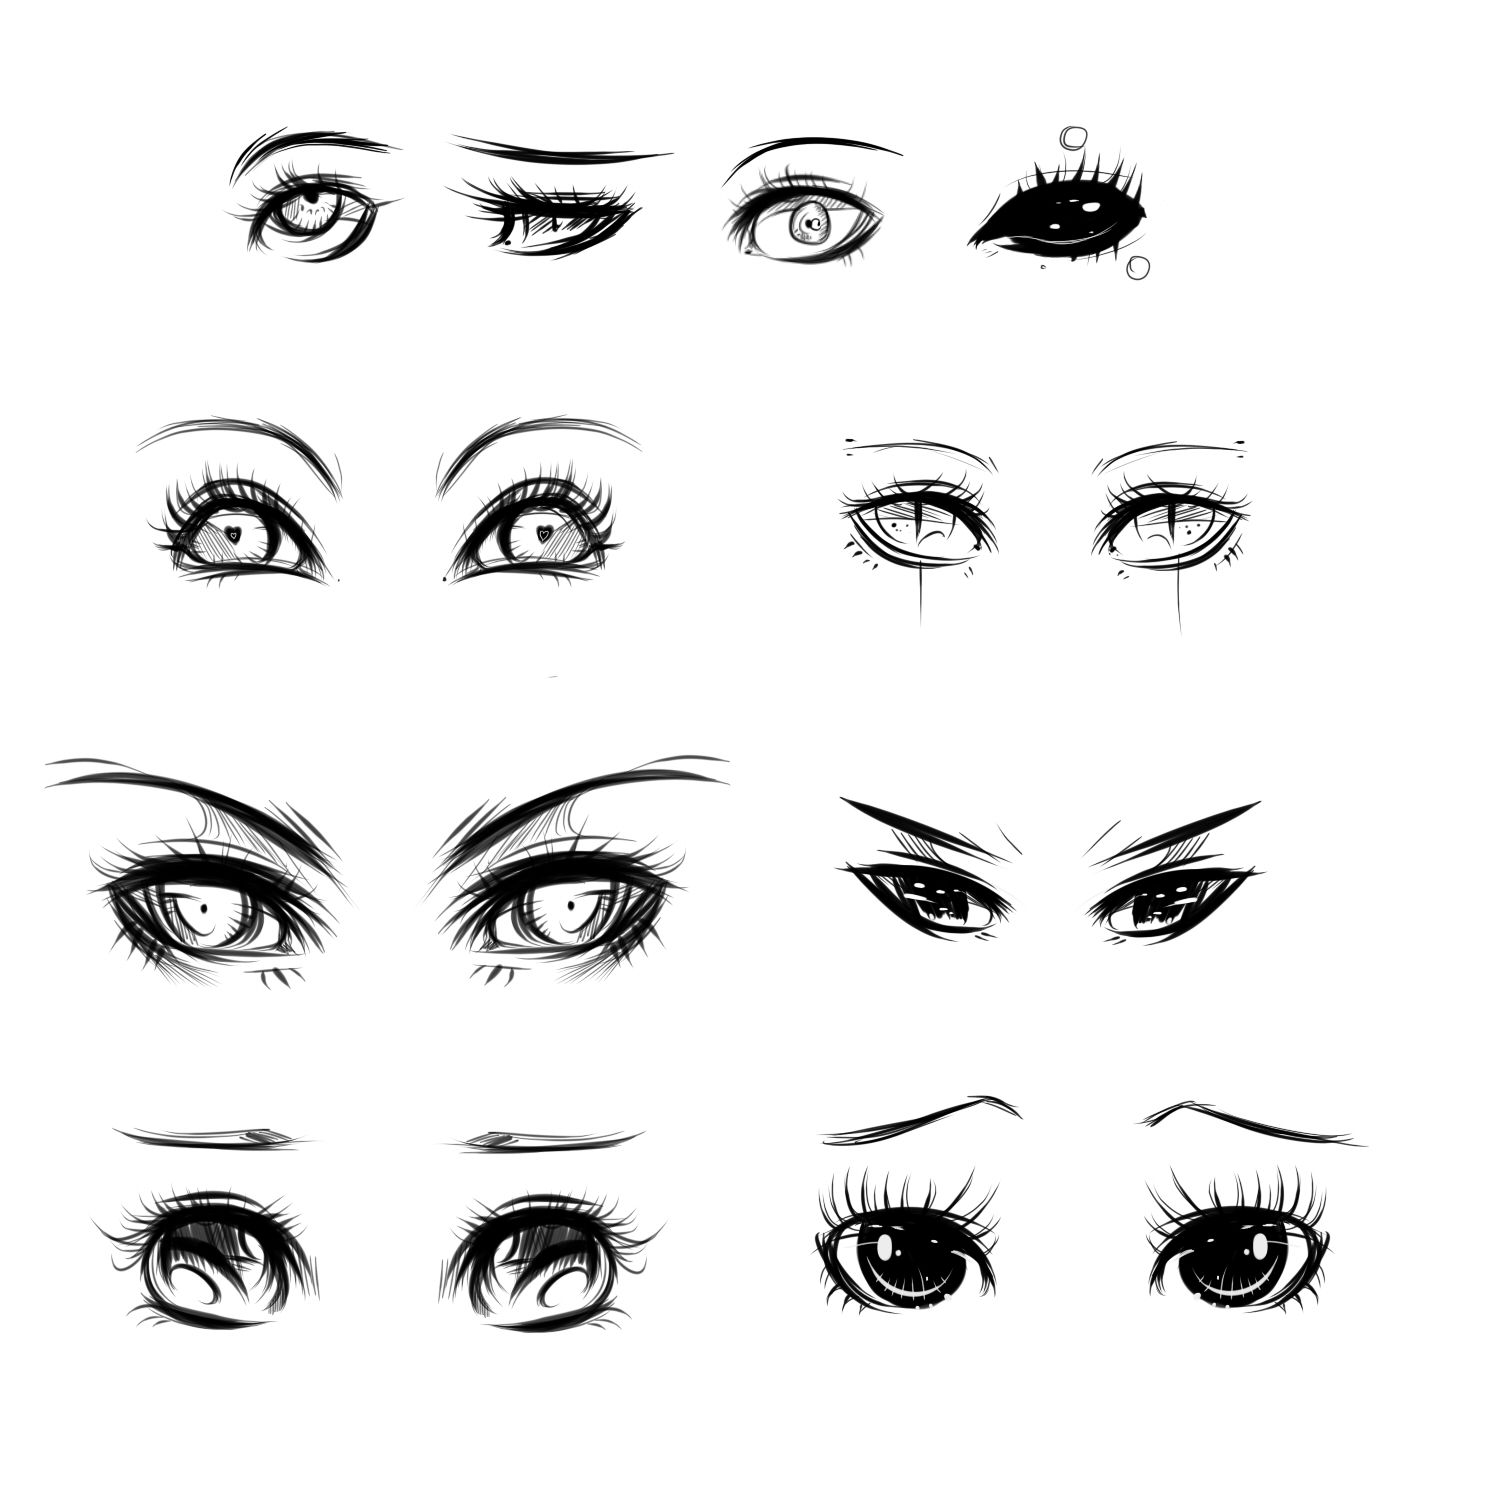 eyes ref by *ryky on deviantART ...If I could only draw ...